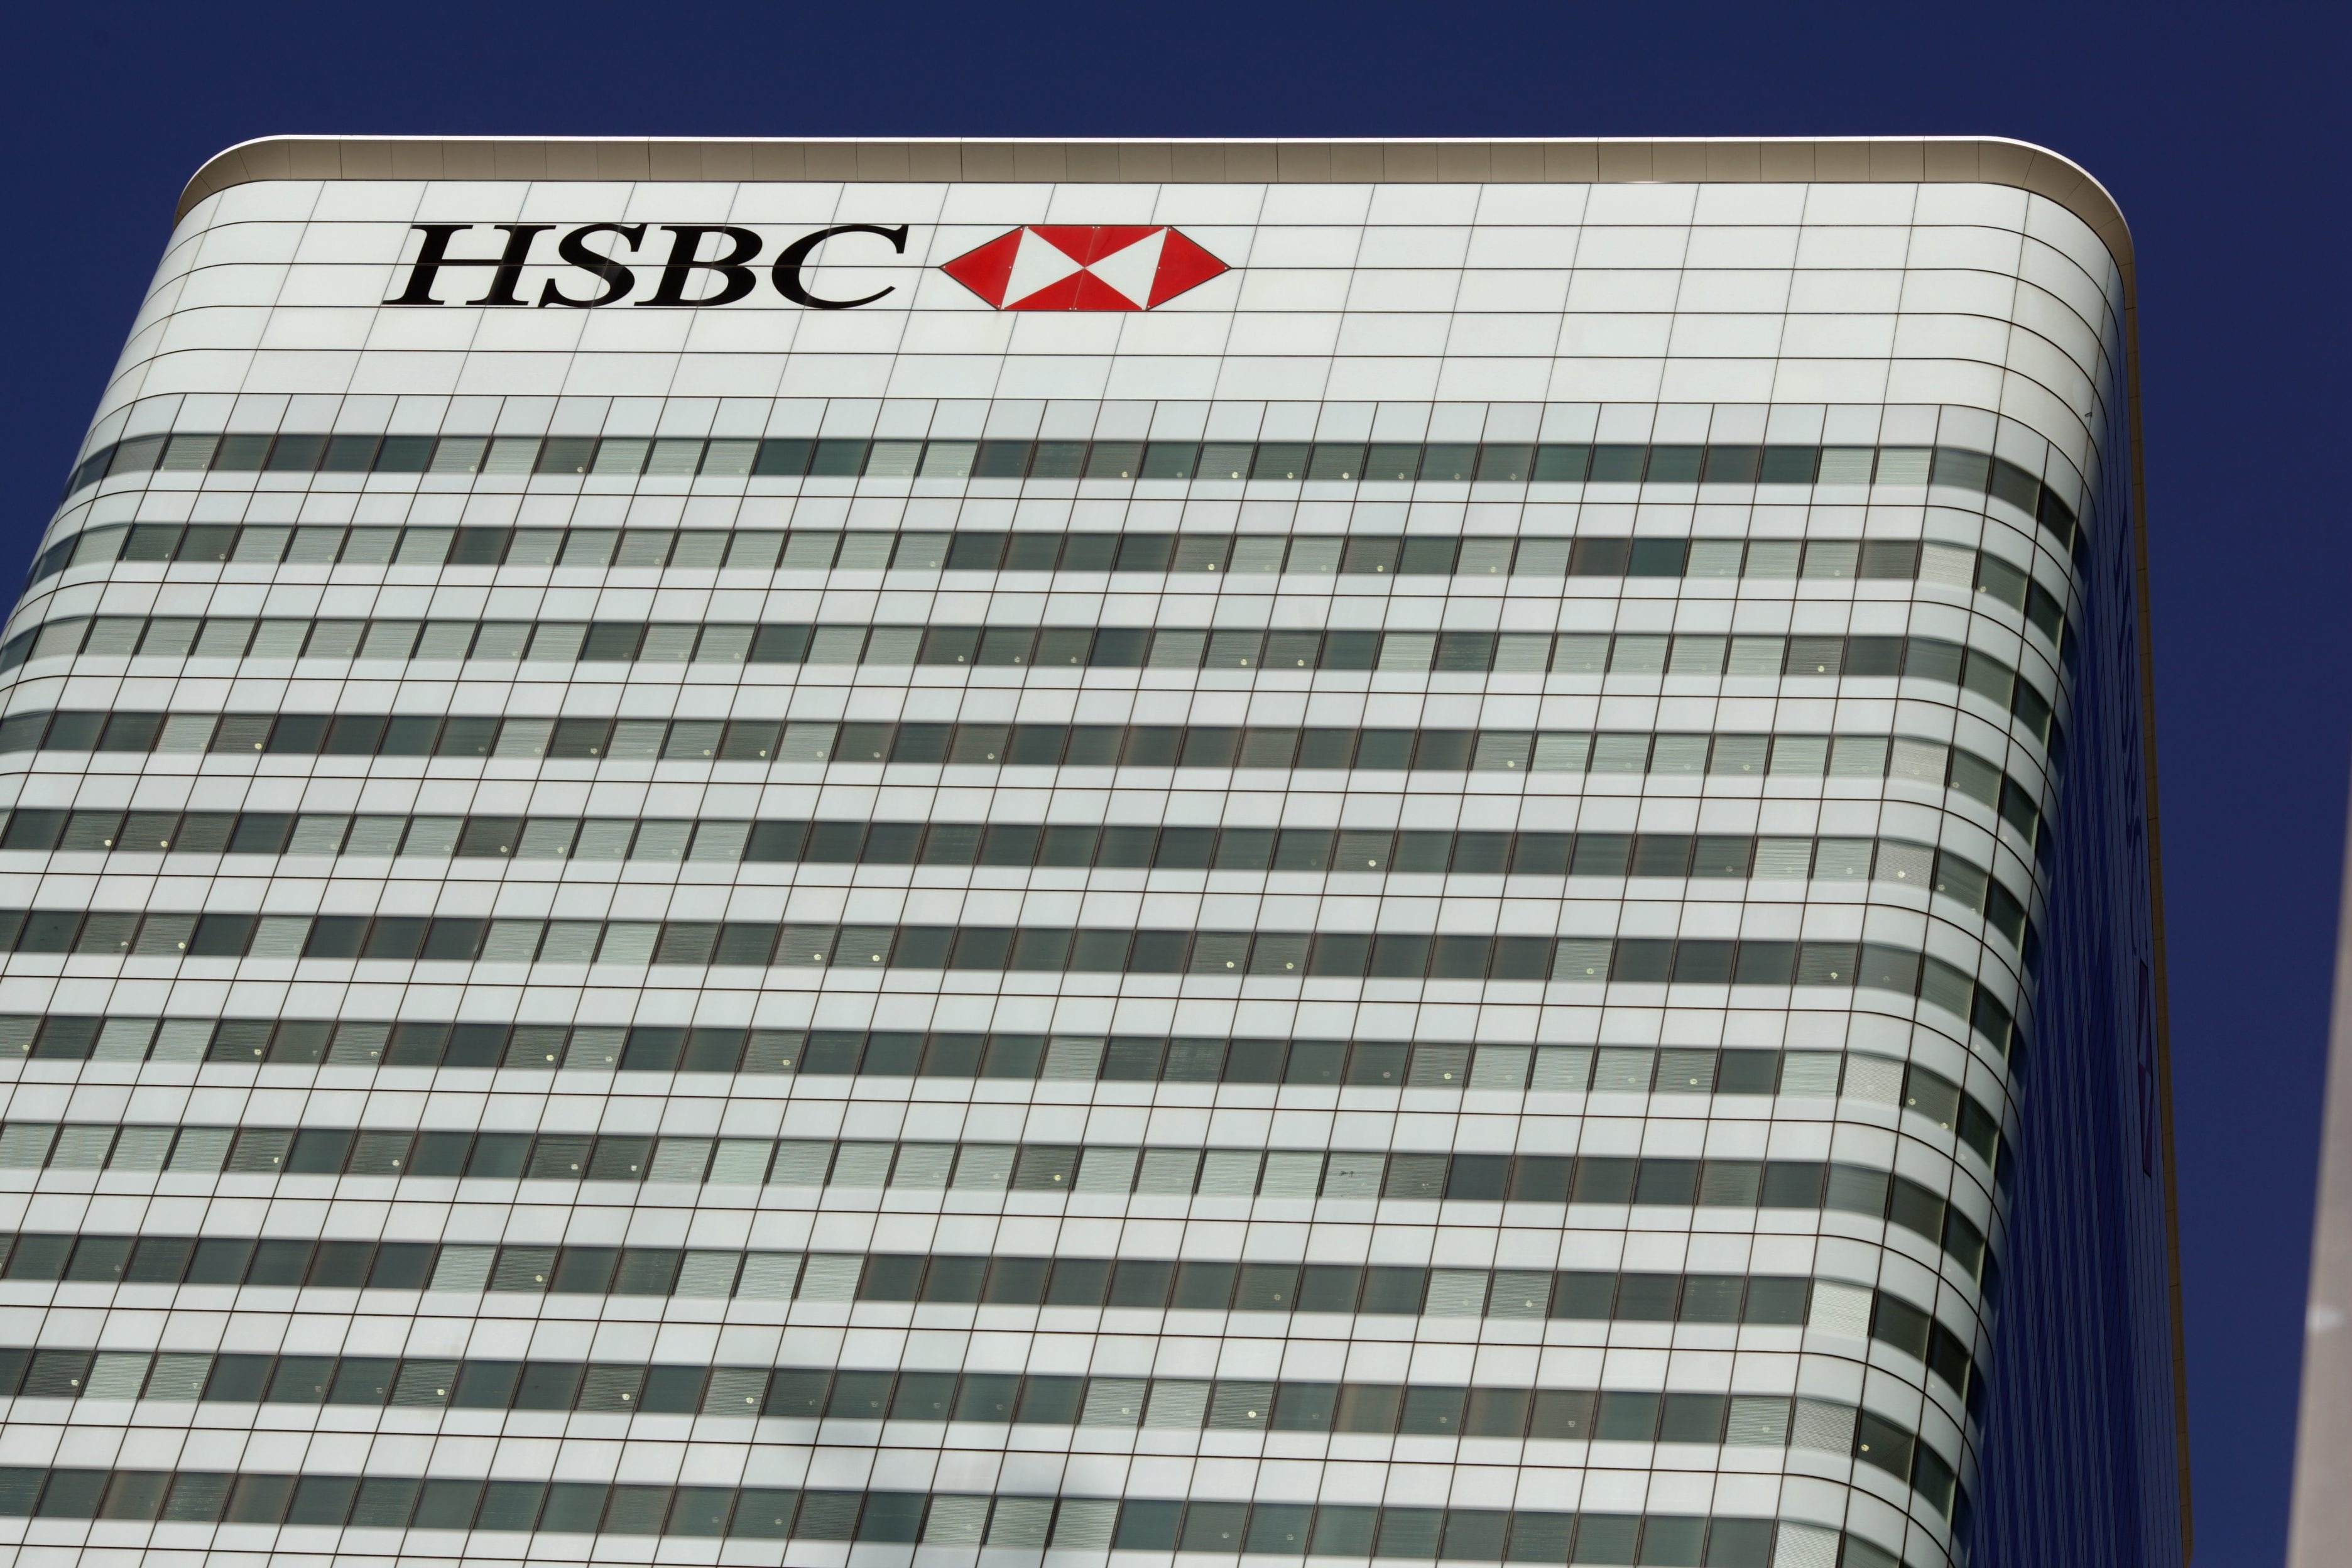 LONDON, ENGLAND - MARCH 07:  A general view of the HSBC Holdings Plc Headquarters at Canary Wharf on March 7, 2011 in London, England.  (Photo by Dan Kitwood/Getty Images)